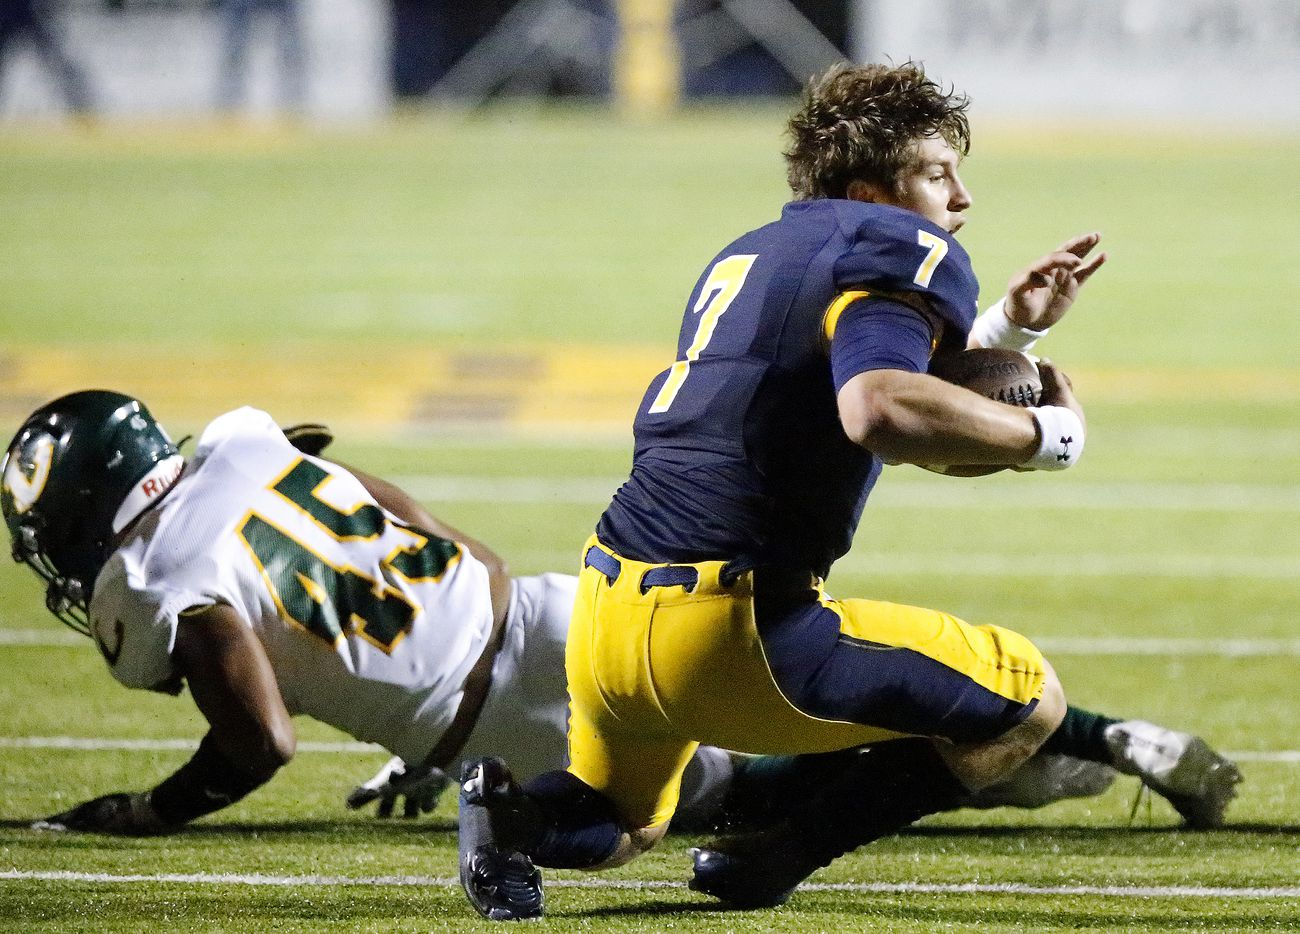 Highland Park High School quarterback Brennan Storer (7) looses his helmet after a hit by Longview High School defensive lineman ROUGELY, Jeremiah Roughly (45) during the first half as Highland Park High School hosted Longview High School at Highlander Stadium in Dallas on Friday night, October 8, 2021. (Stewart F. House/Special Contributor)